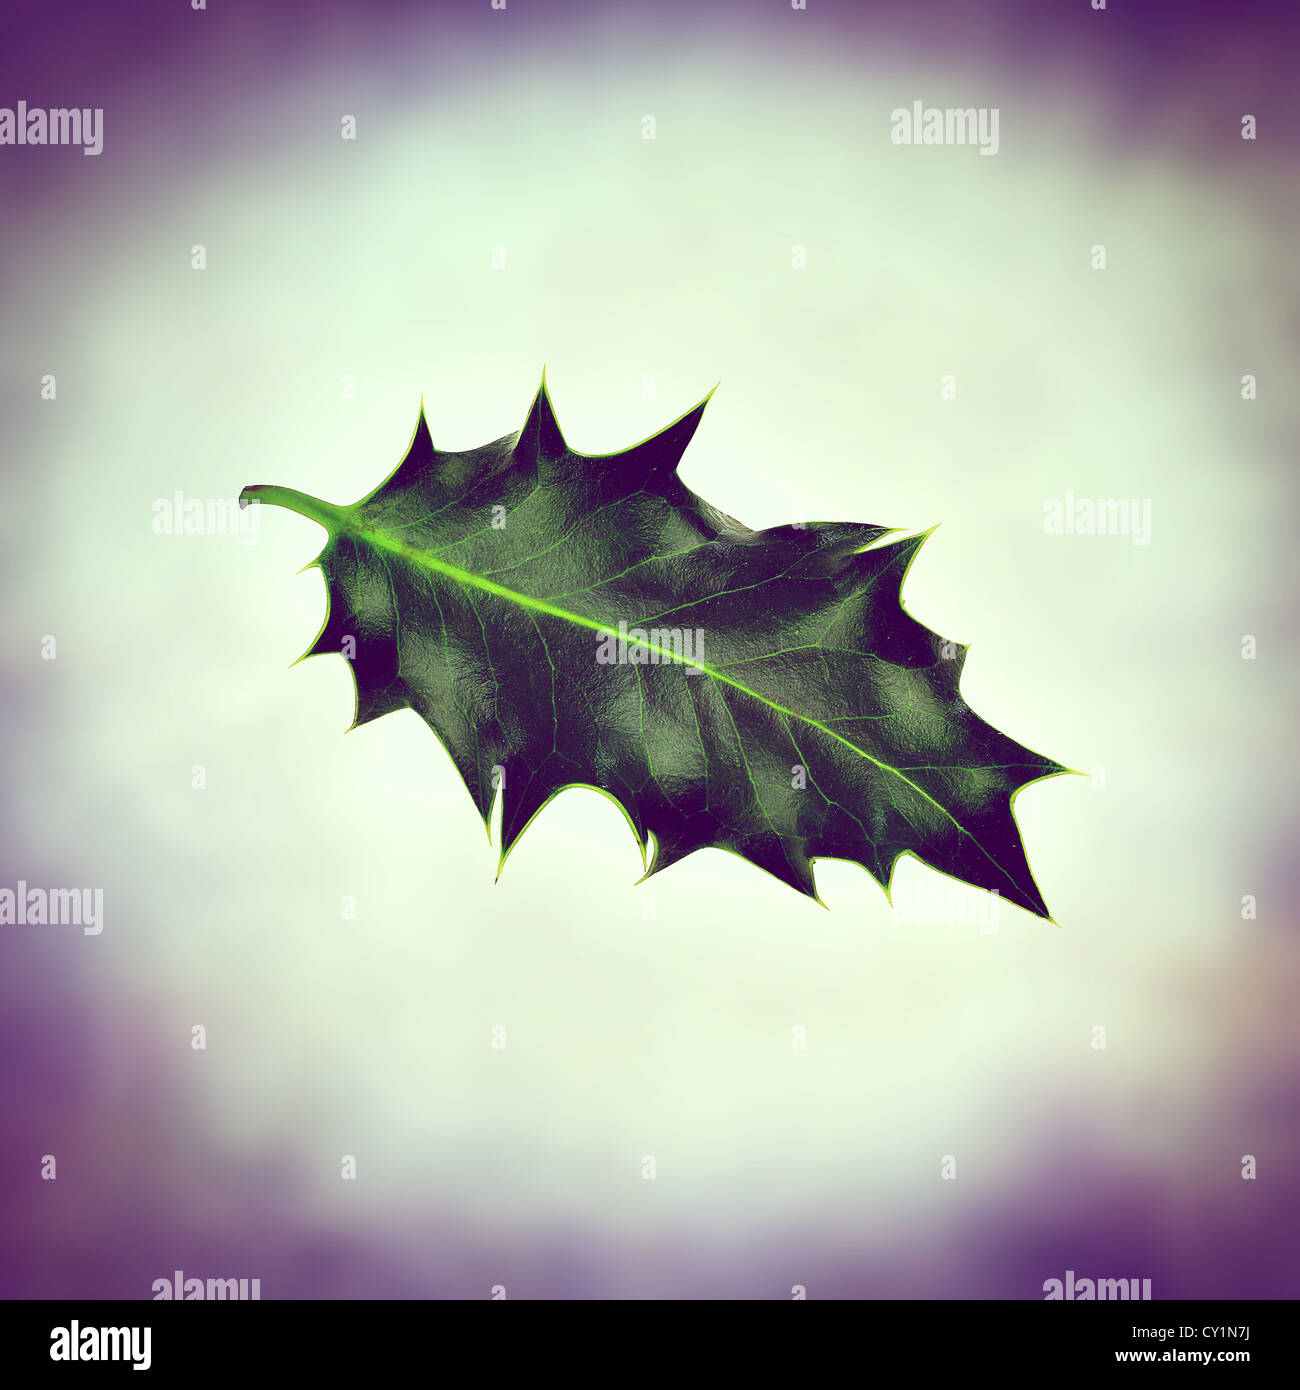 seasonal holly - Stock Image